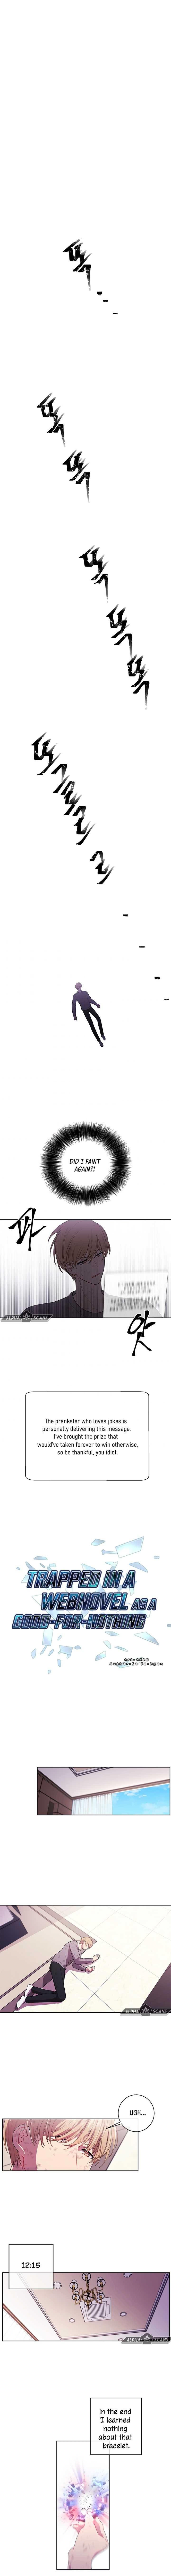 Trapped In A Webnovel As A Good-For-Nothing Chapter 58 page 2 - Mangakakalots.com